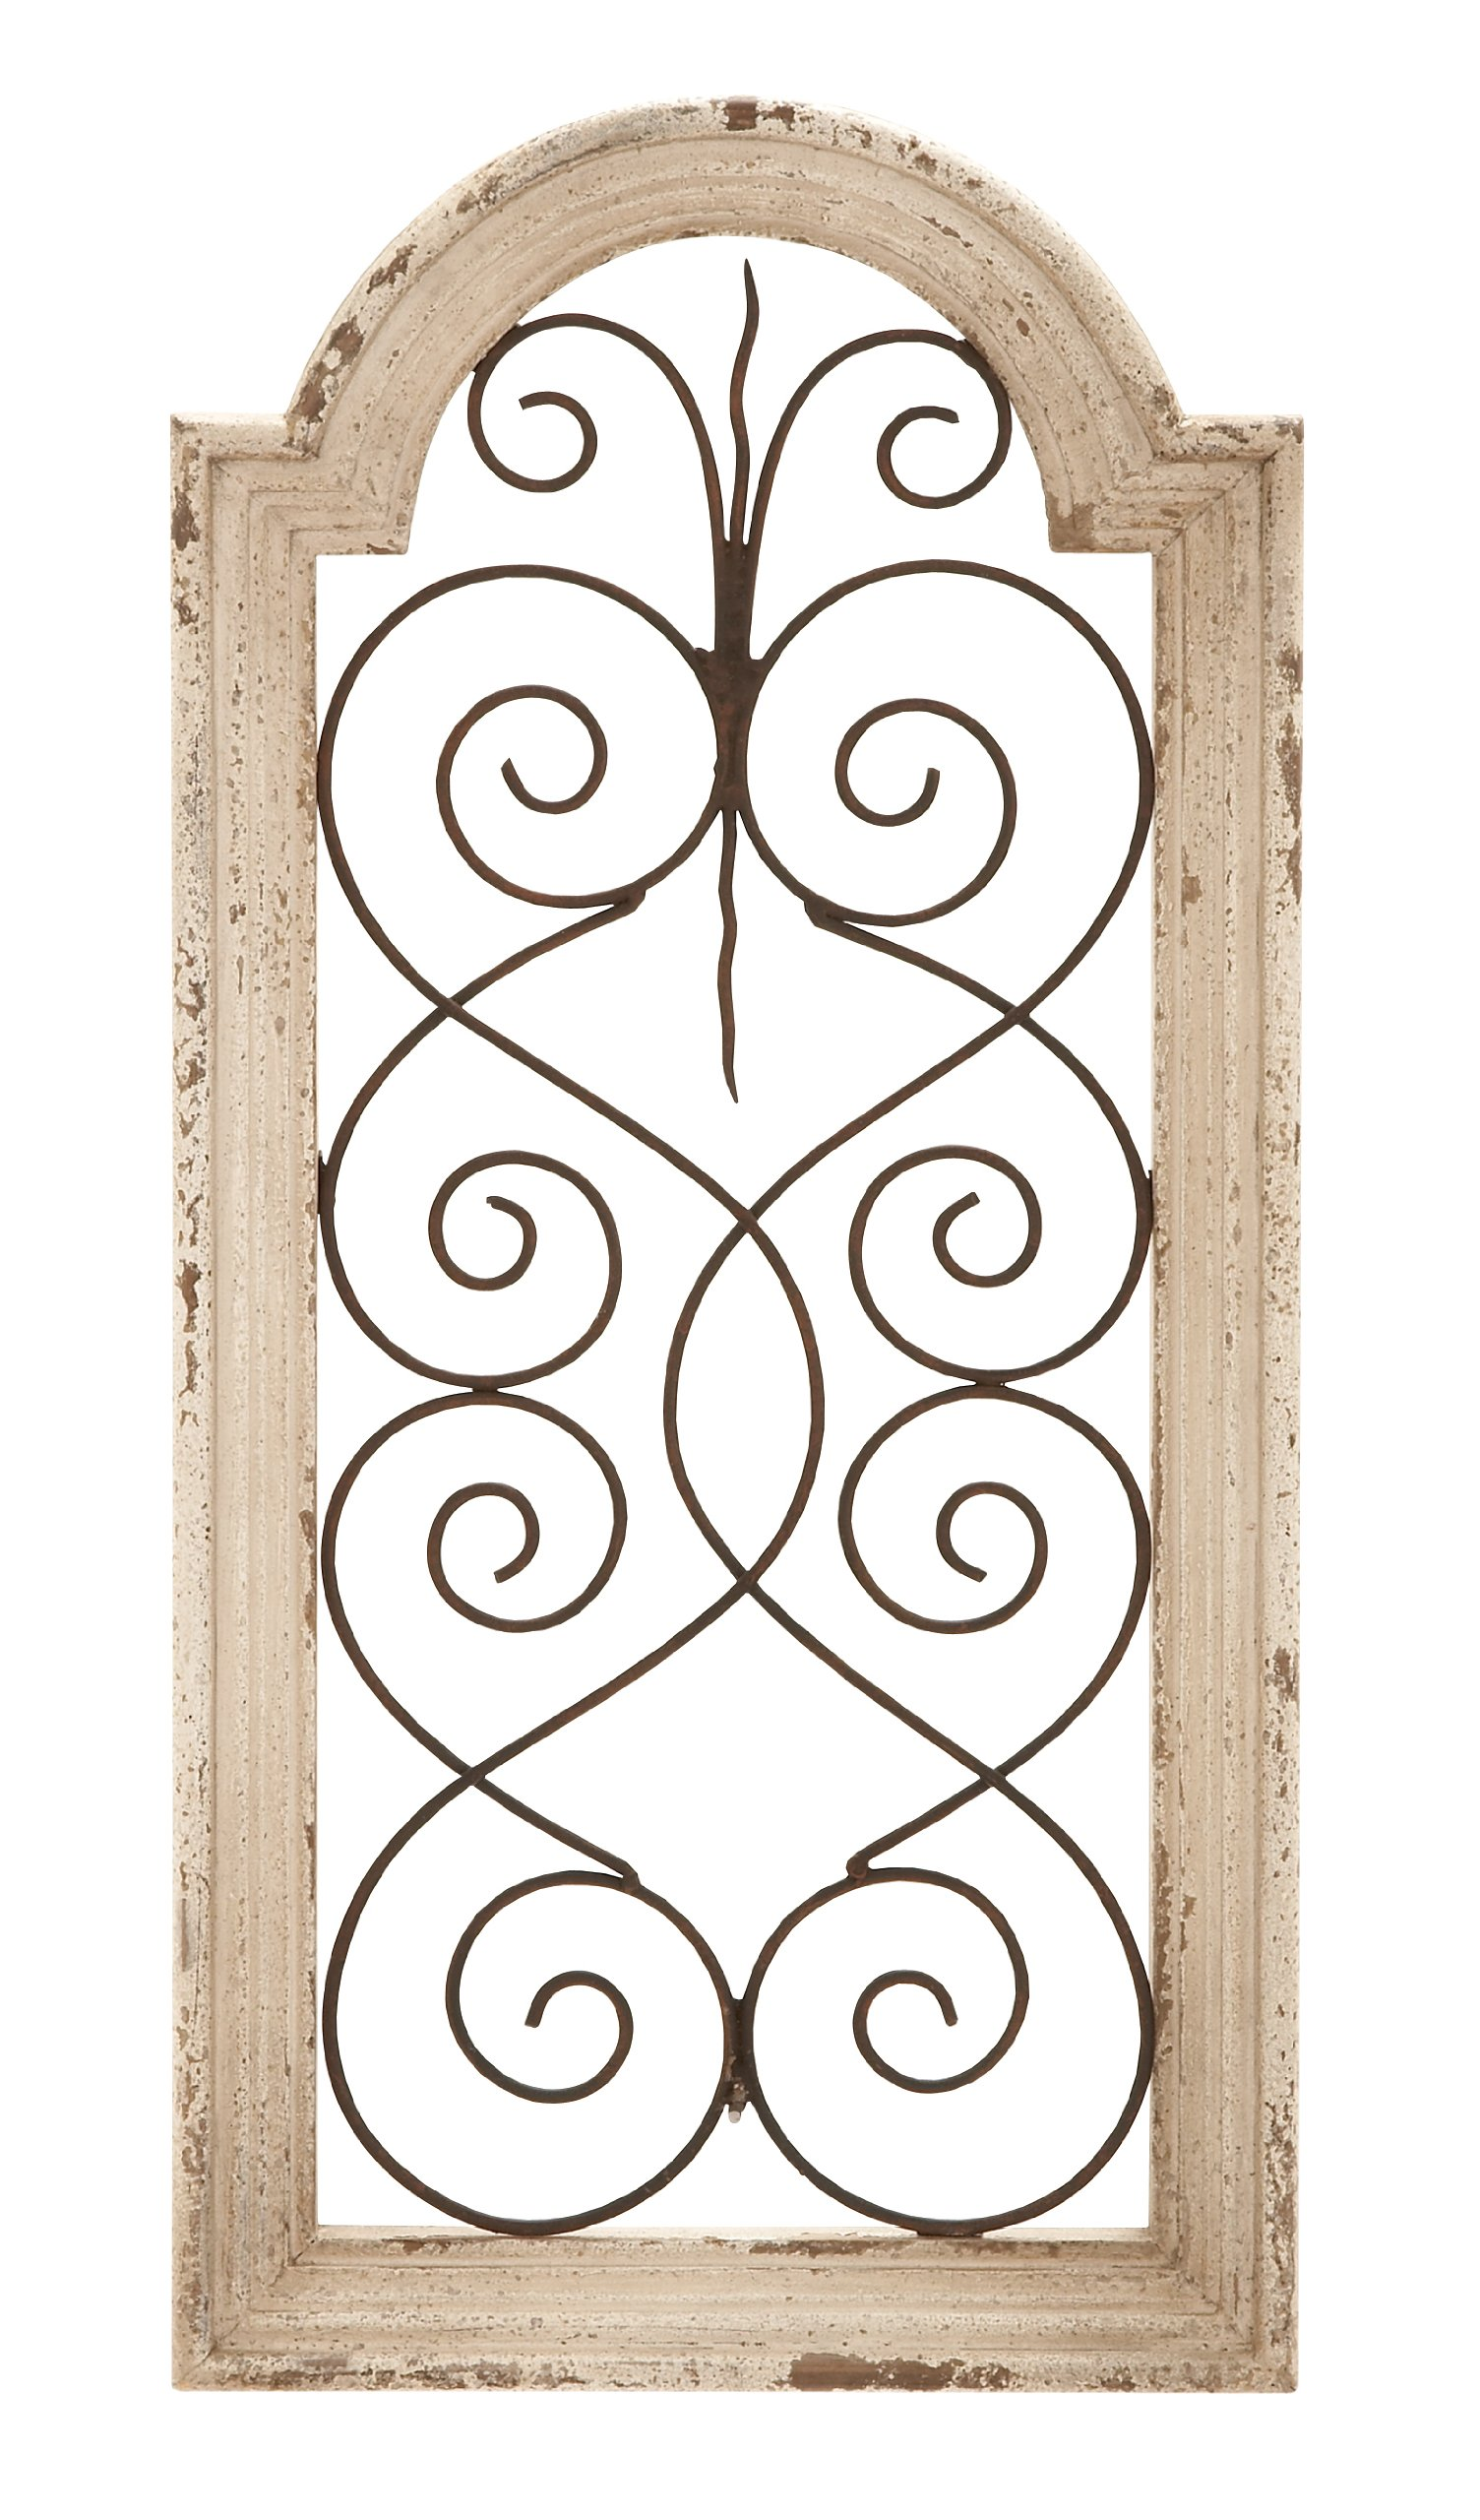 Deco 79 Rustic Wood and Metal Arched Window Wall Decor 10 by 20'' Textured Ivory White Finish